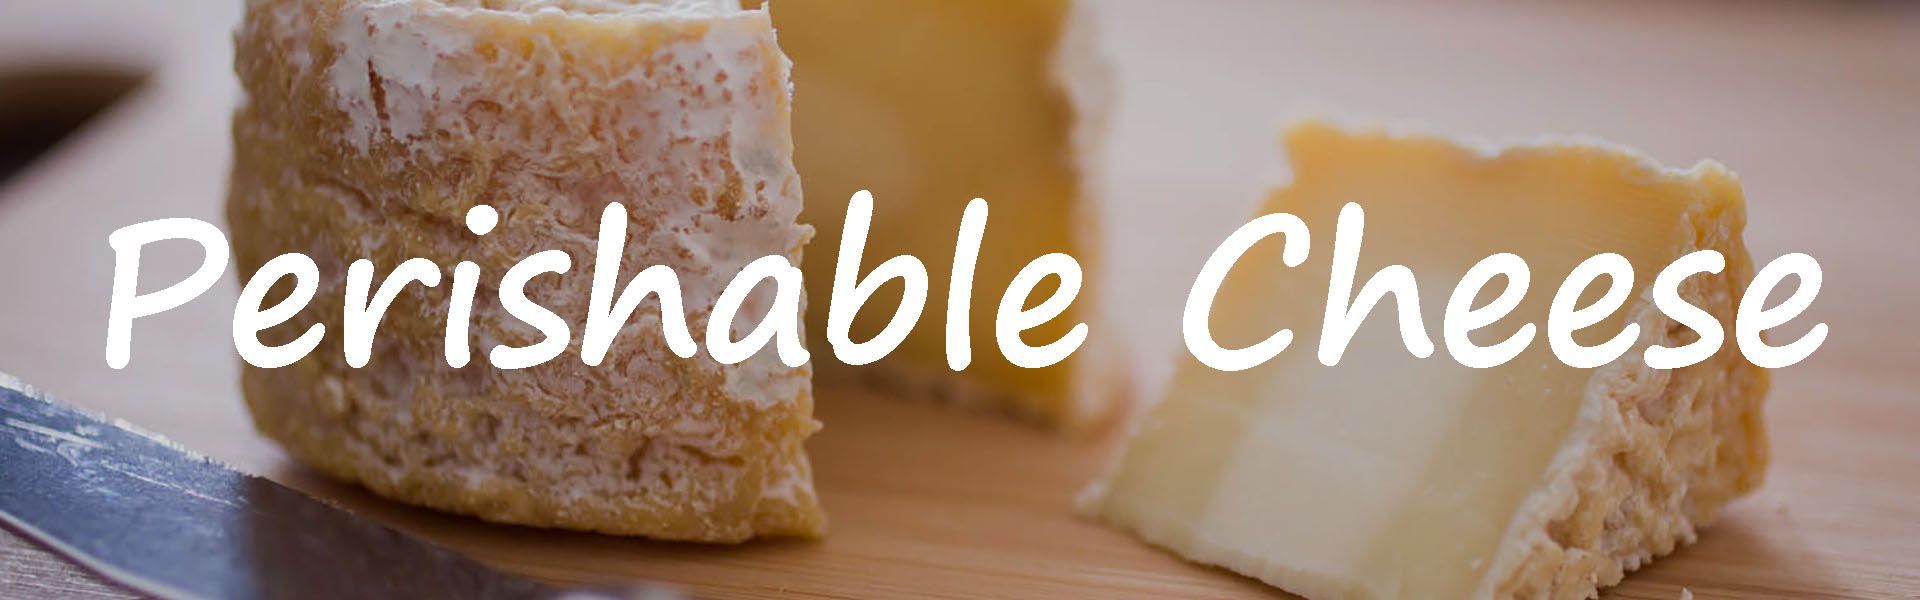 web-ready-perishable-cheese-2